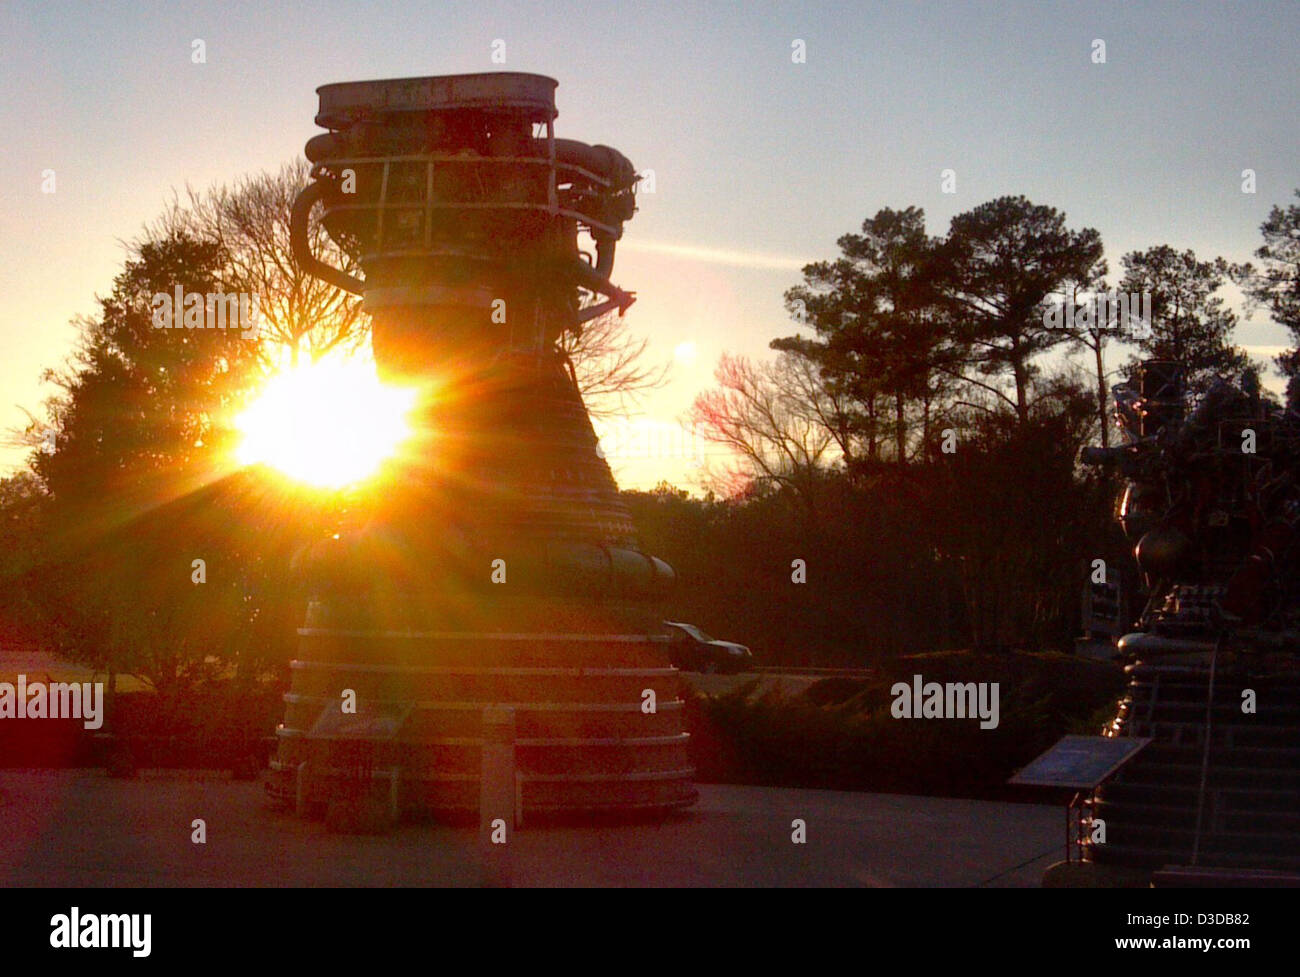 Propulsion Legacy (NASA, Marshall, 01/29/12) - Stock Image